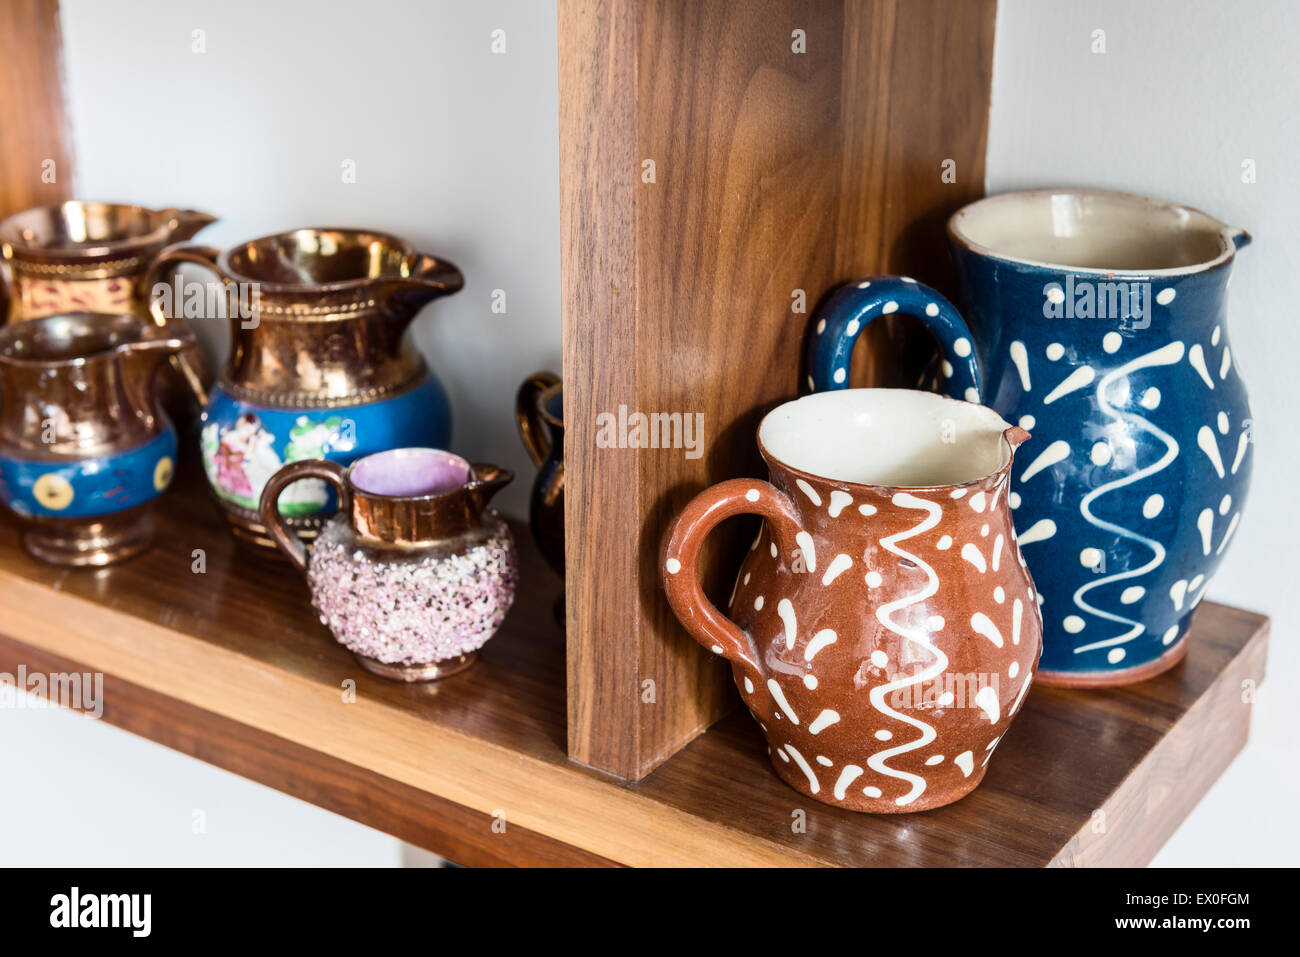 Earthenware jugs with a squiggle and dot glaze - Stock Image